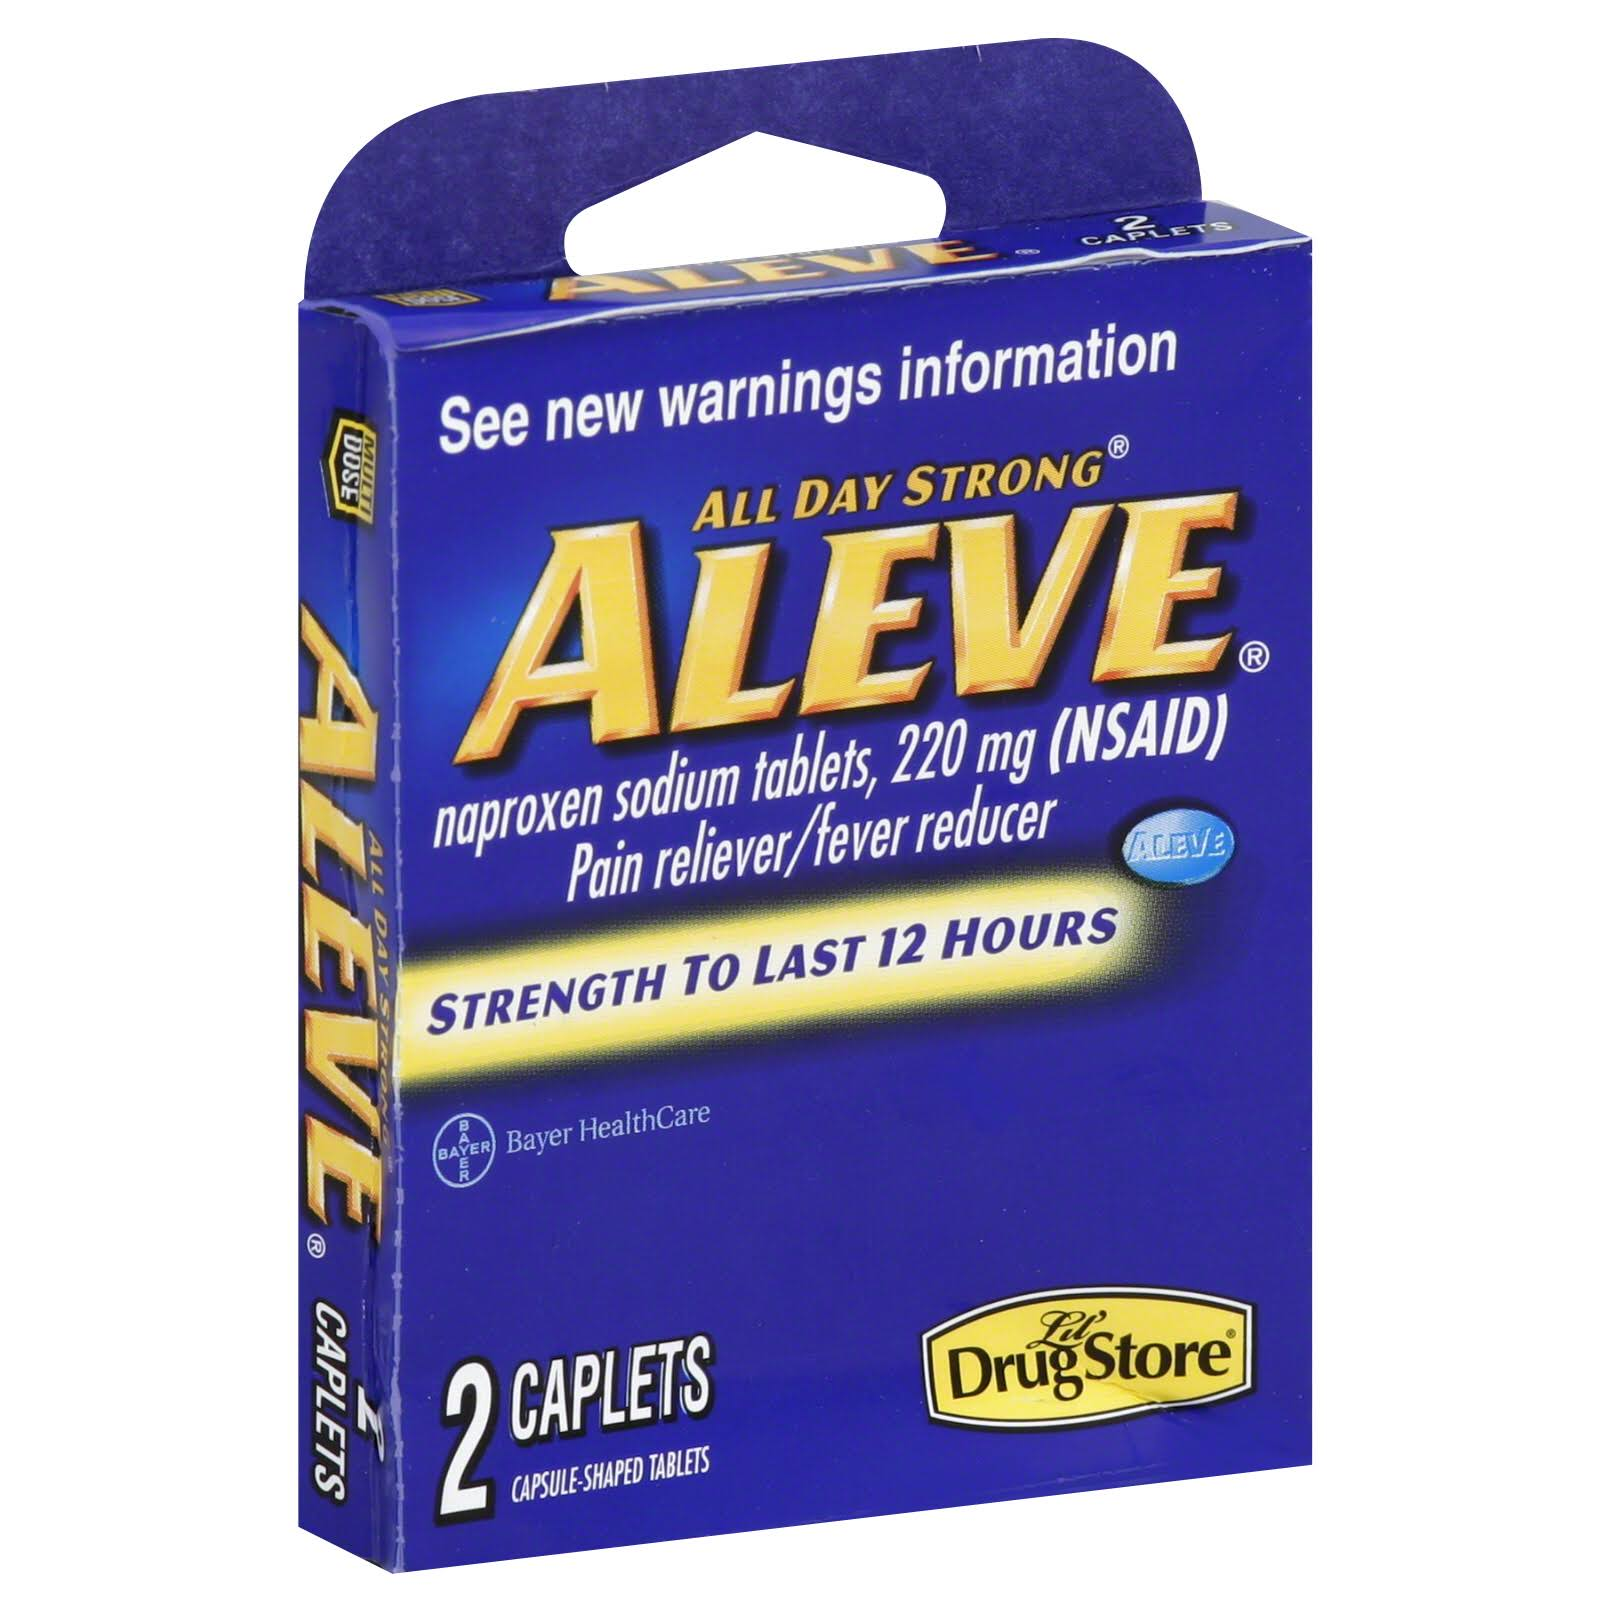 Aleve Pain Reliever/Fever Reducer (NSAID), 200 mg, All Day Strong, Aleve, Caplets - 2 caplets